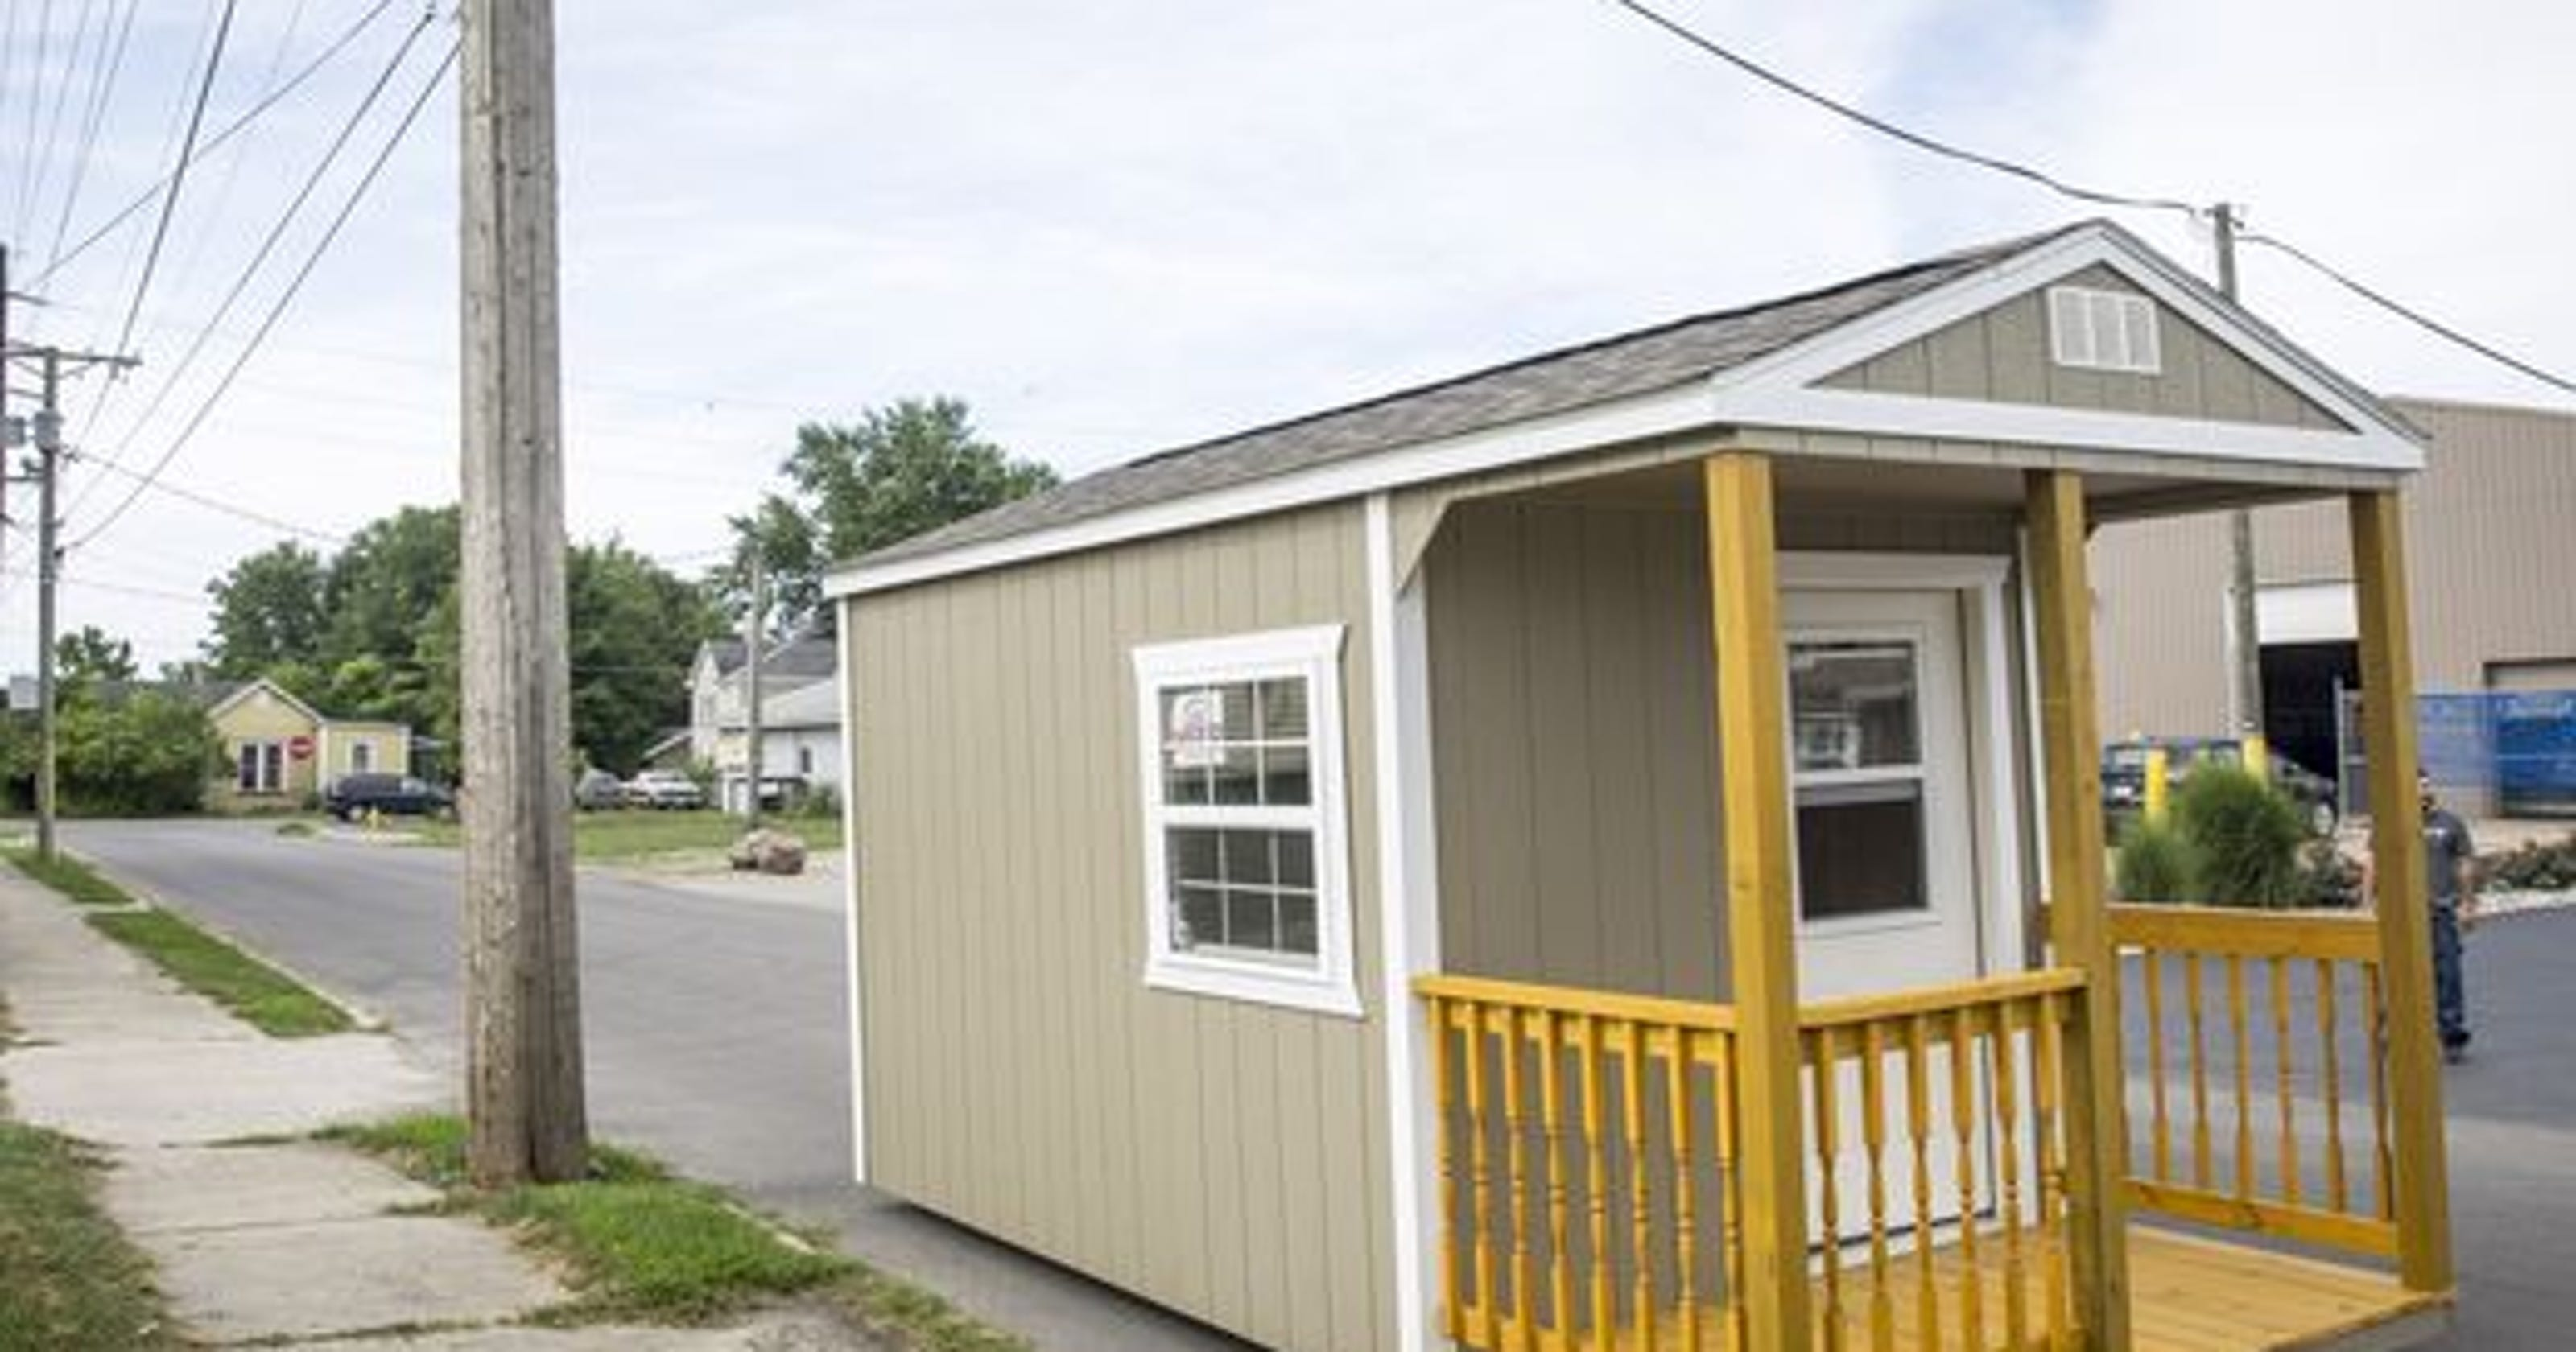 Indianas First Tiny Homes For Homeless Arrive In Muncie